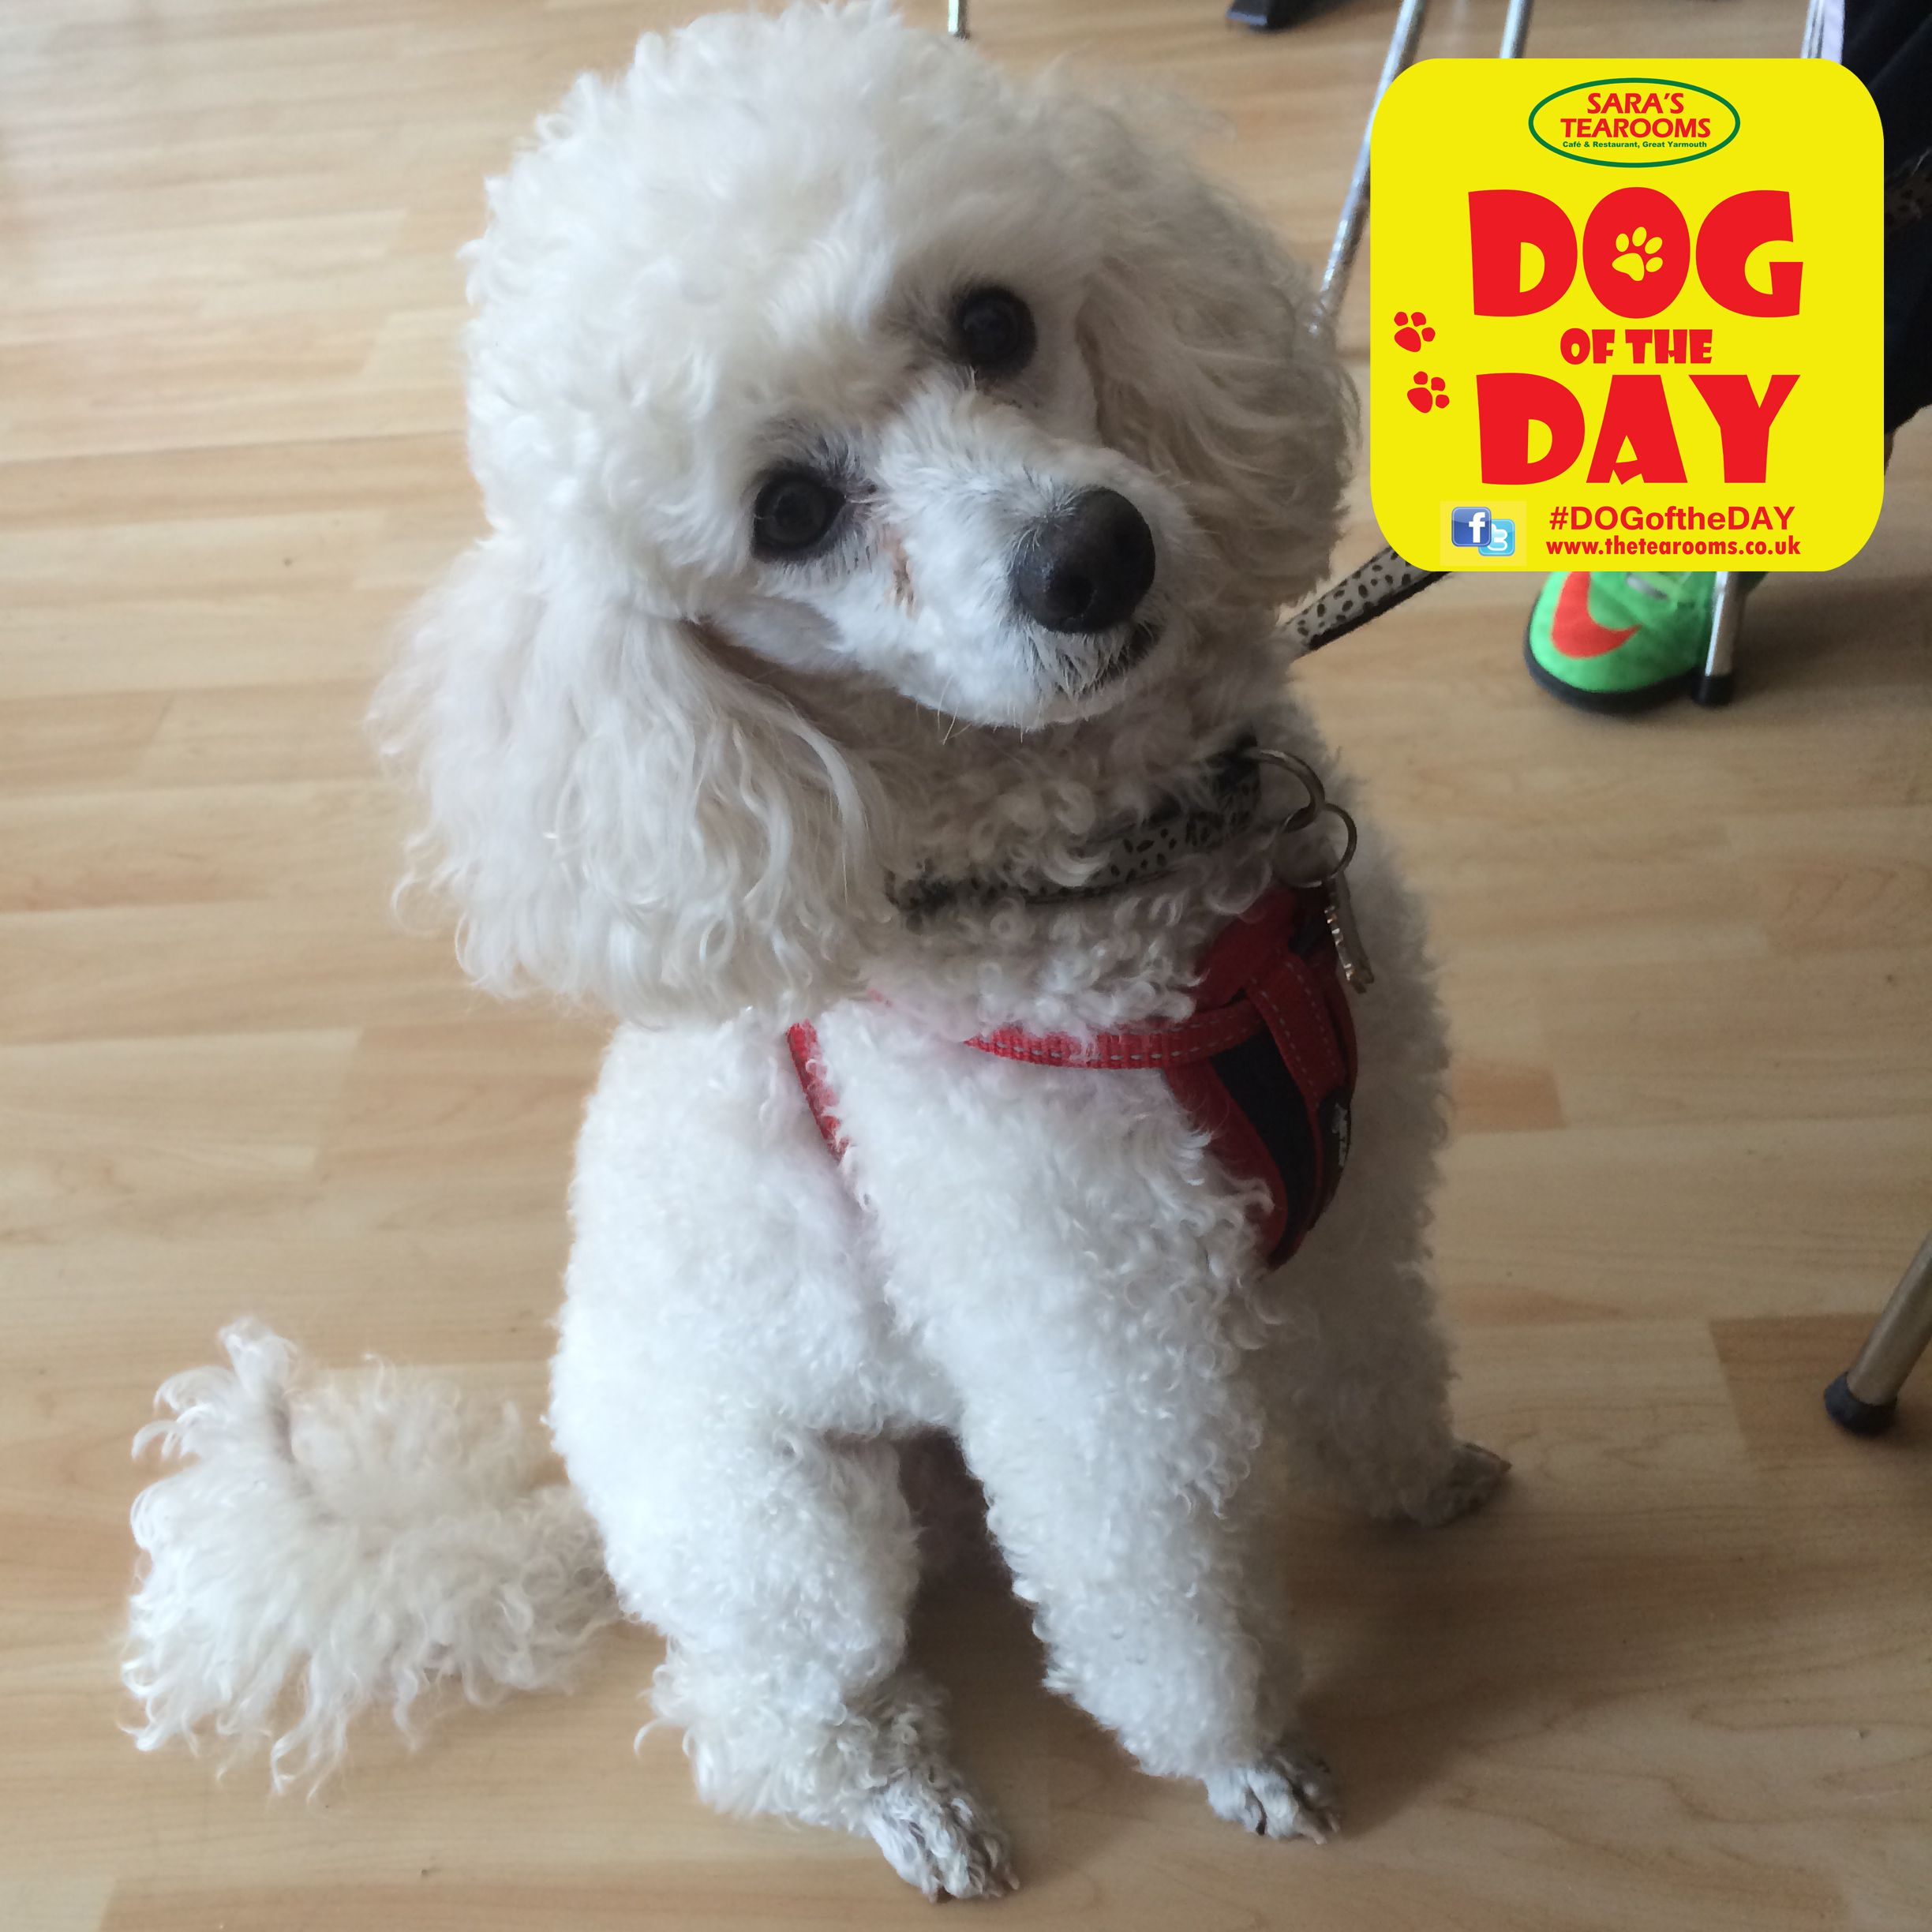 Leo A Year Old Toy Poodle Perros Adorables Pinterest - Dog obsessed with stuffed santa toy gets to meet her idol in real life